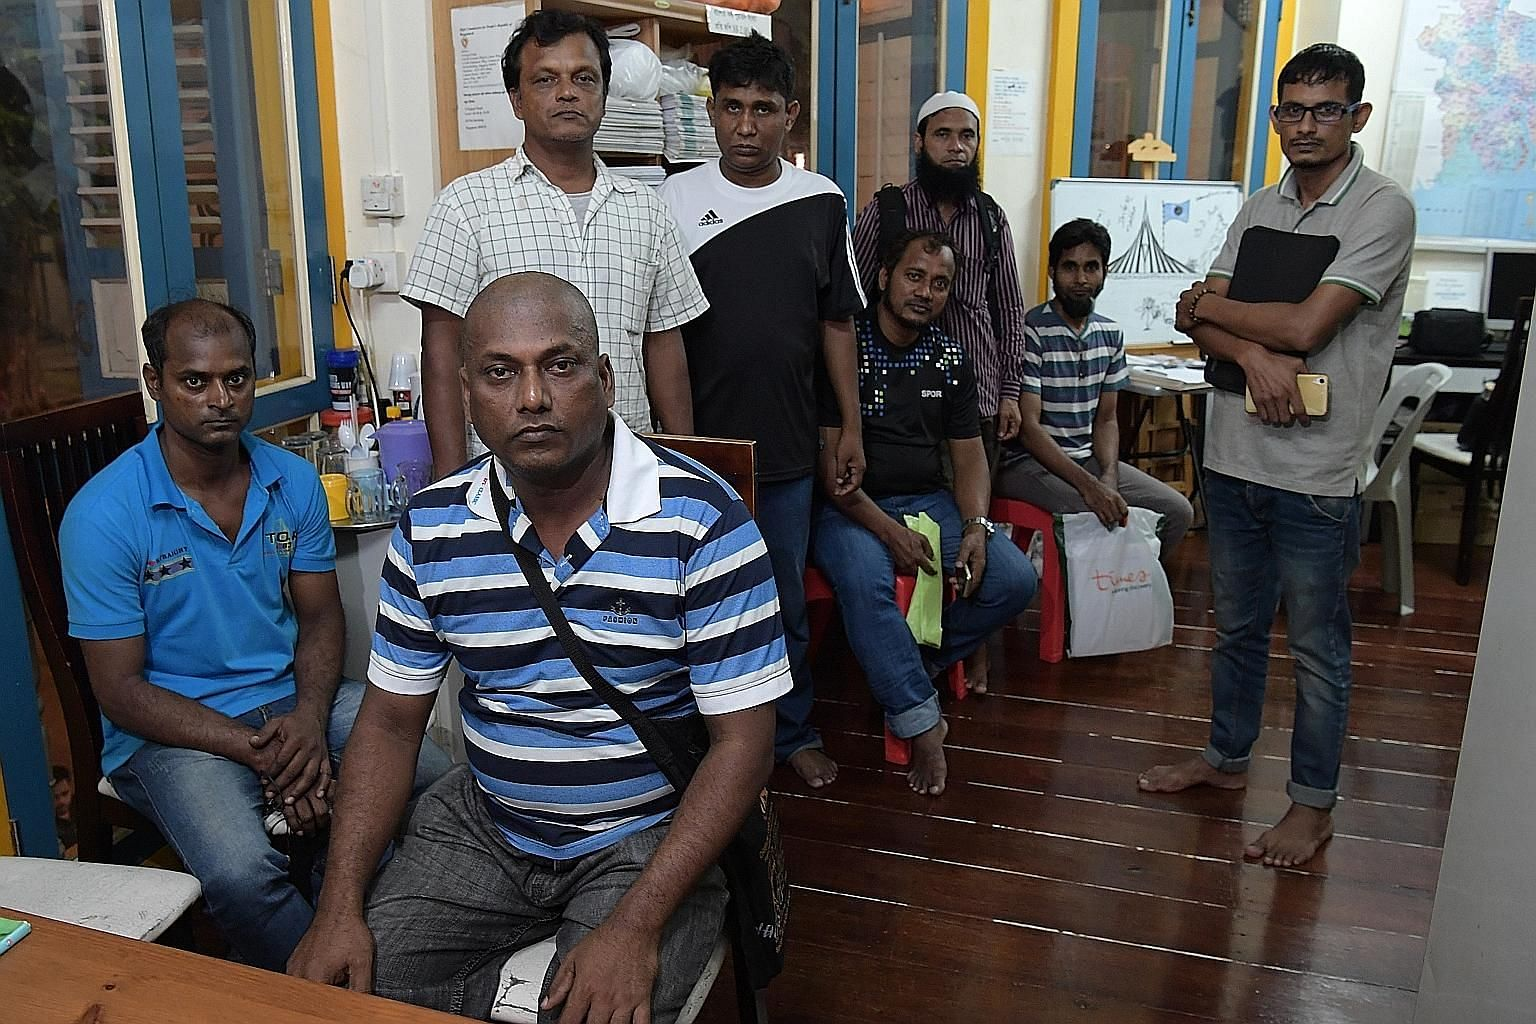 From far left: Mr Amimul, 46; Mr Hasan Mehedi (seated), 46; Mr Saijuddin, 48; Mr Zaman, 46; Mr Kadir, 47; Mr Safiqul, 37; Mr Mohammad Liton, 45; and Mr Monirul Islam, 29. The workers filed their salary claims with the Manpower Ministry earlier this y